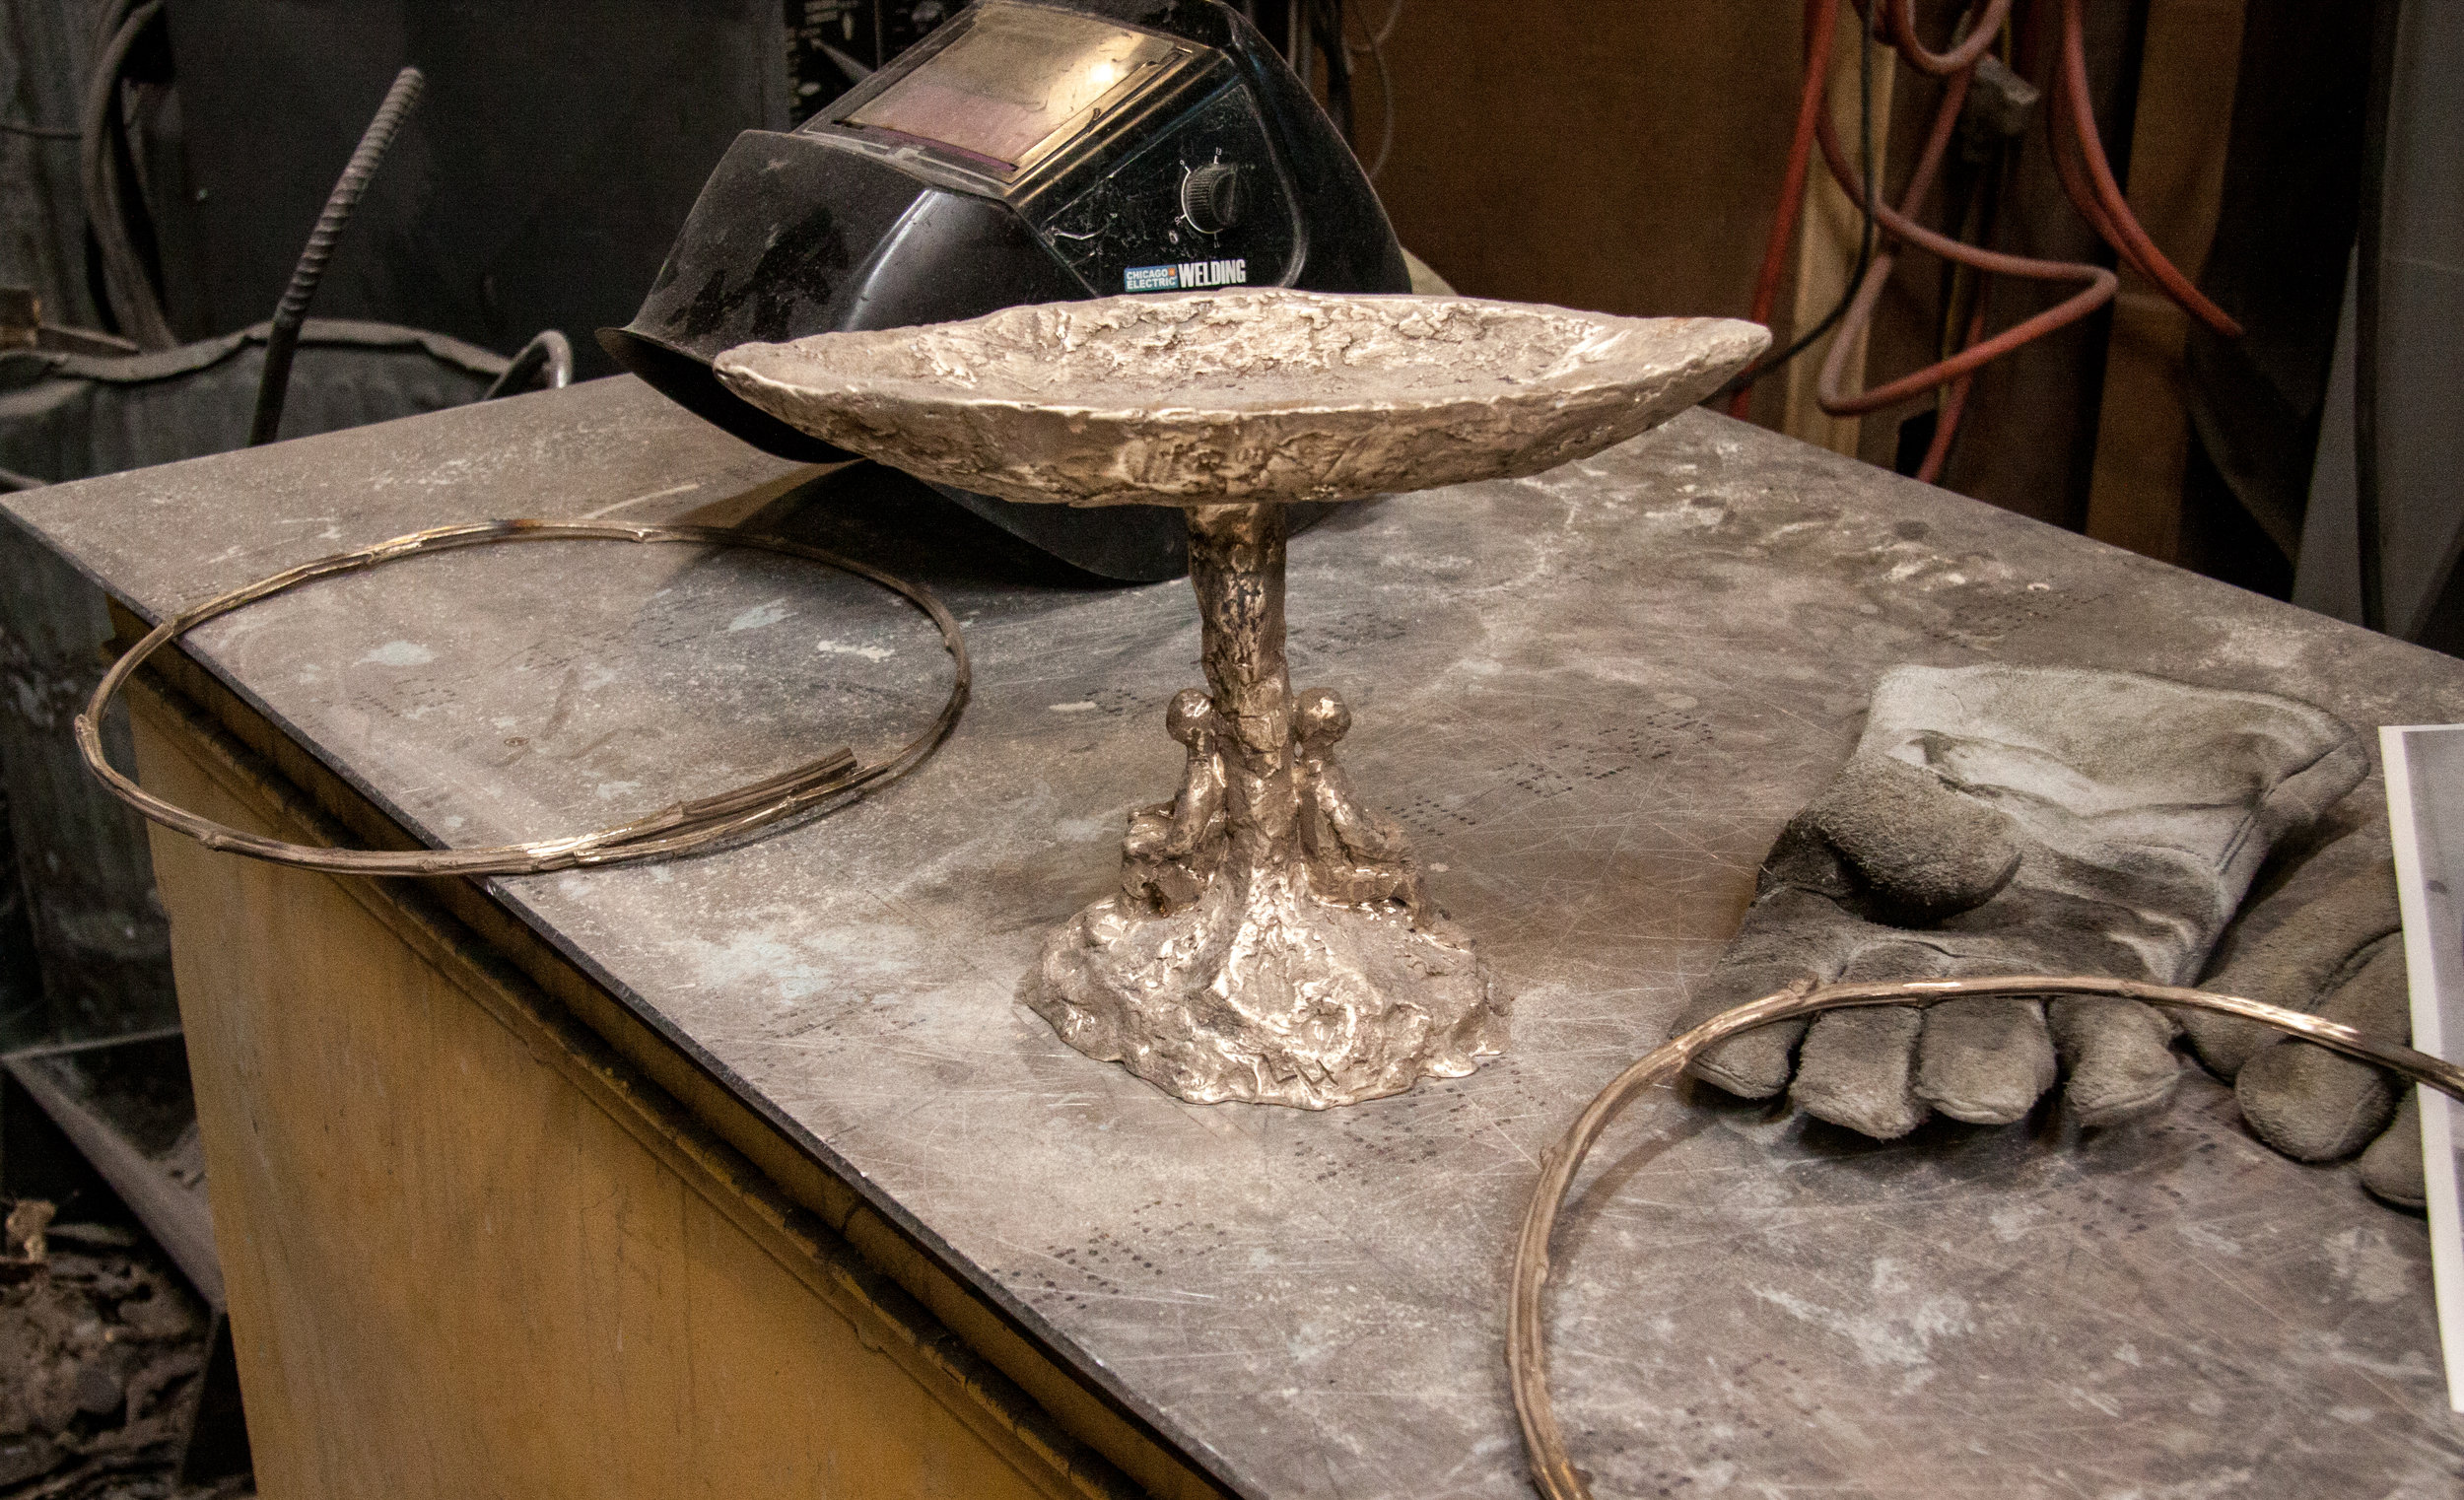 The two circular tree branches will be welded to the sculpture to form the two circles surrounding the chalice flame.